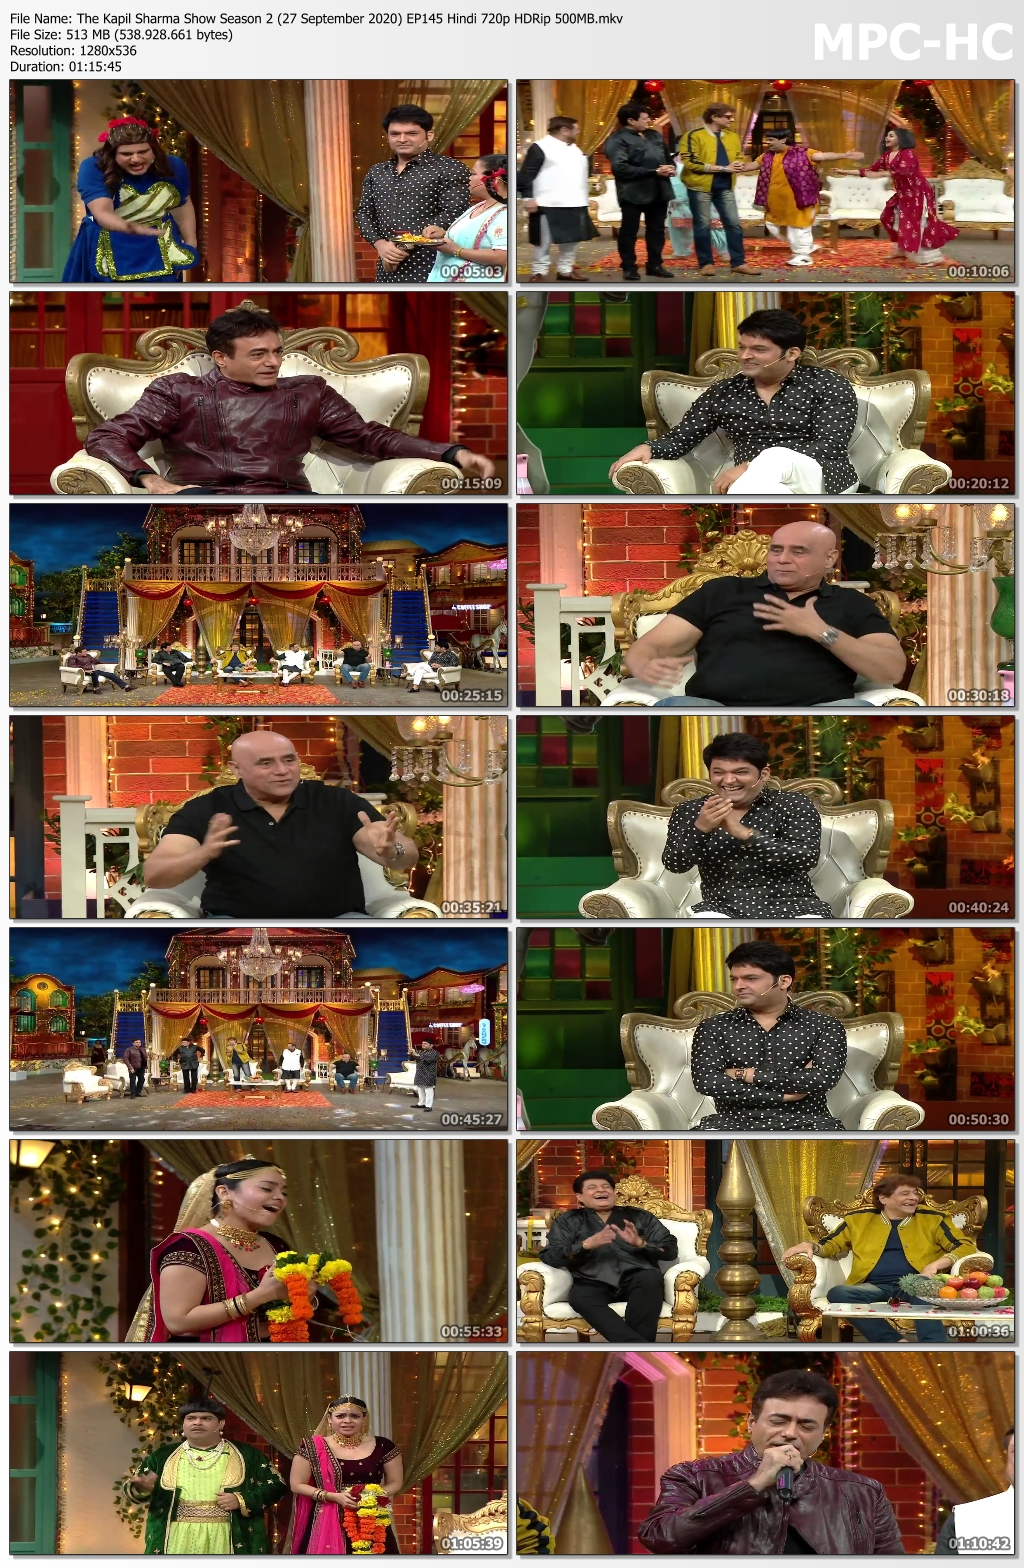 The-Kapil-Sharma-Show-Season-2-27-September-2020-EP145-Hindi-720p-HDRip-500-MB-mkv-thumbs